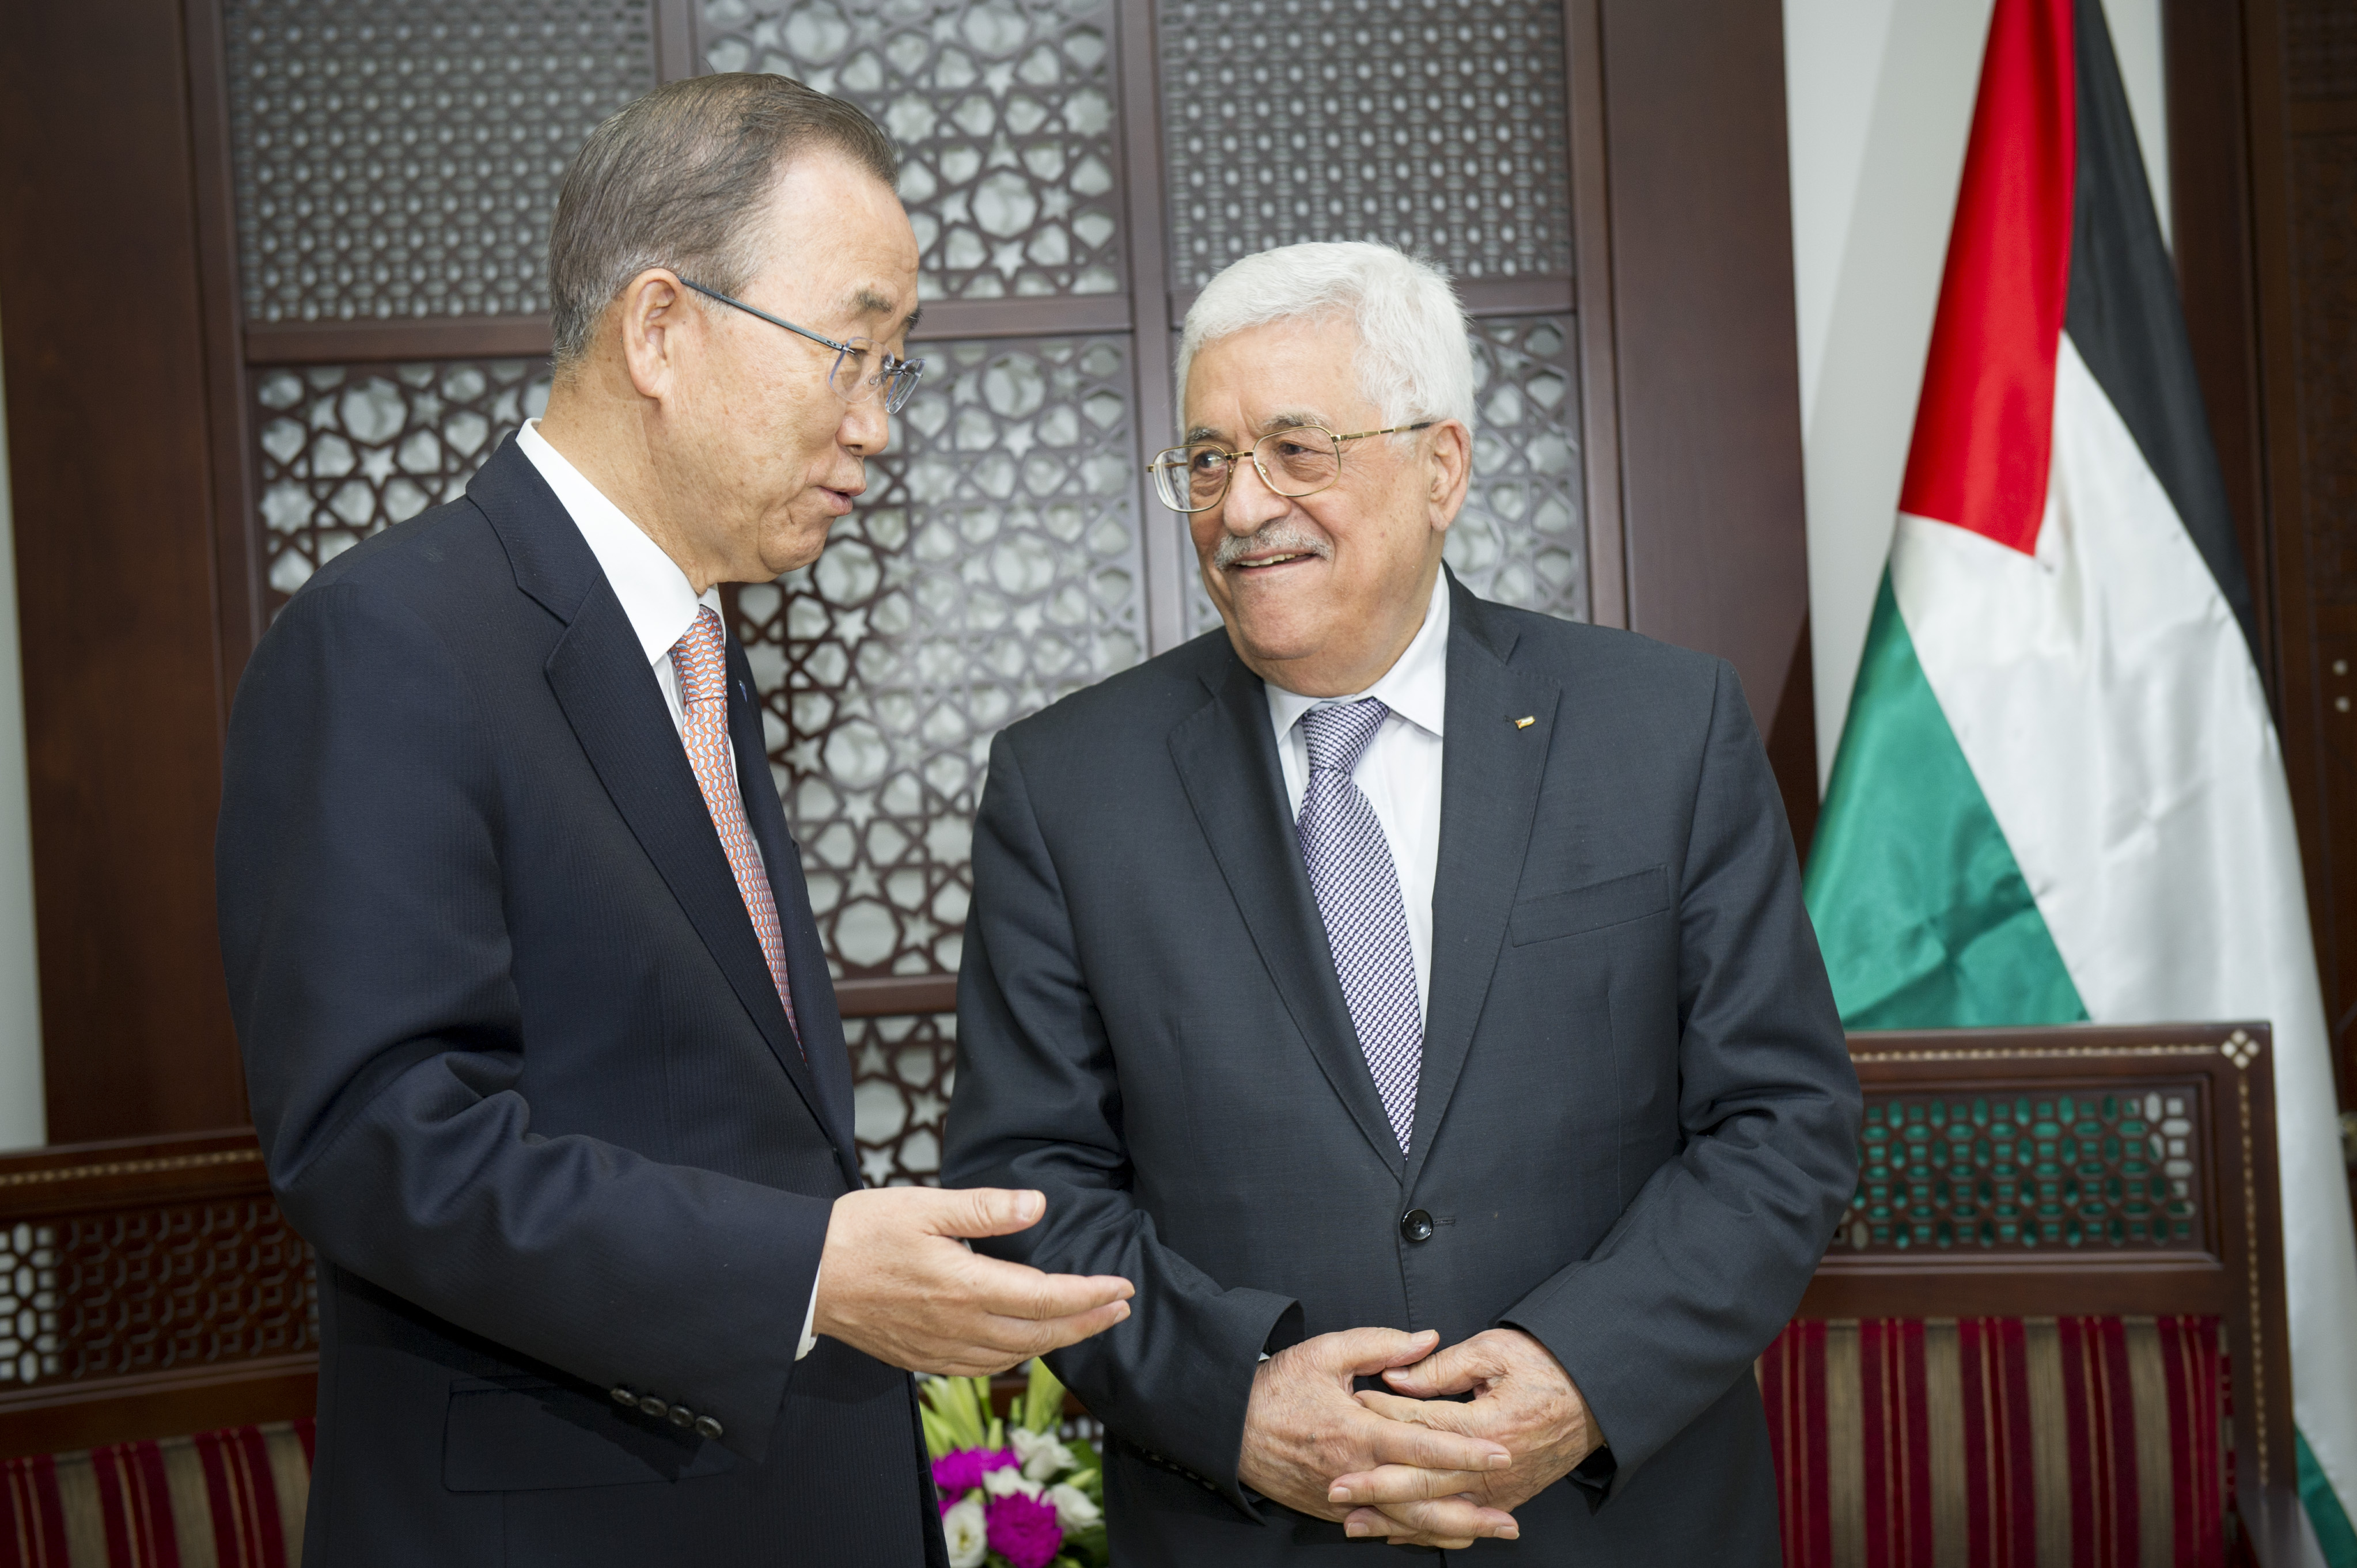 Palestinian President Mahmoud Abbas, meets with U.N. Secretary-General Ban Ki-moon (left) on October 21, 2015 in Ramallah. In 2016, Abbas signed into law a juvenile protection bill that meets modern international standards for safeguarding children's rights, with a focus on alternatives to incarceration. (Photo: Rick Bajornas / UN Photo)